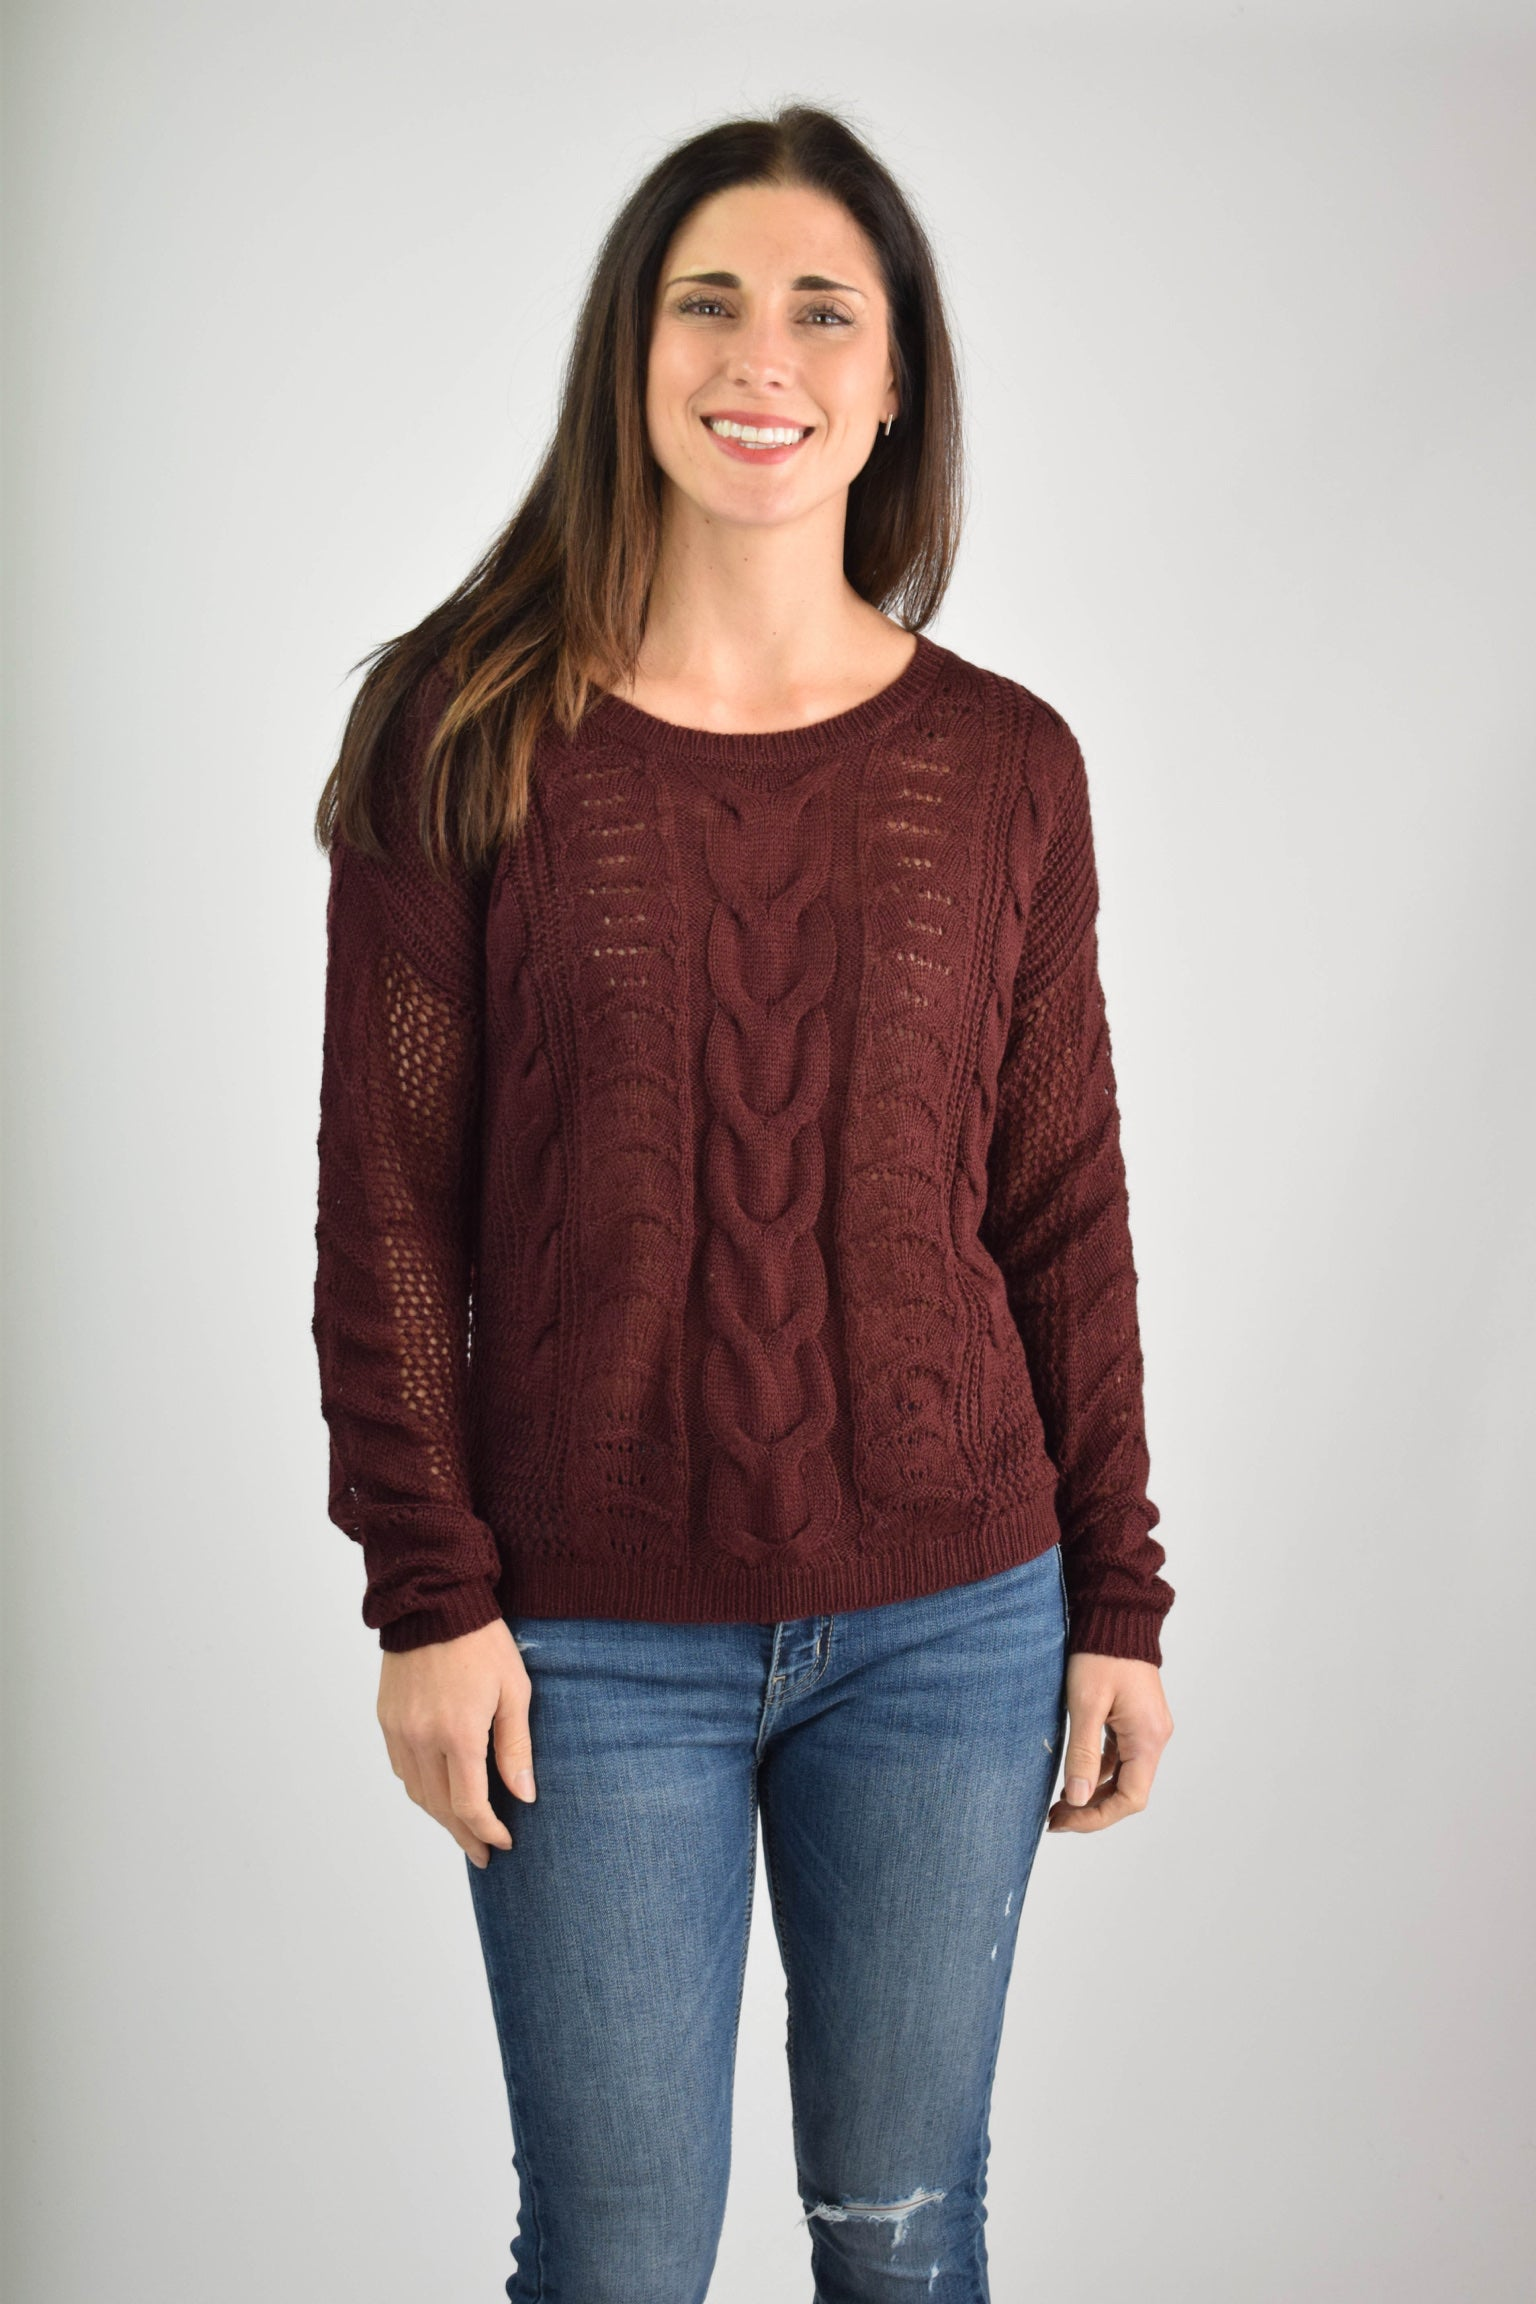 Blessing From Above Knit Sweater- Burgundy